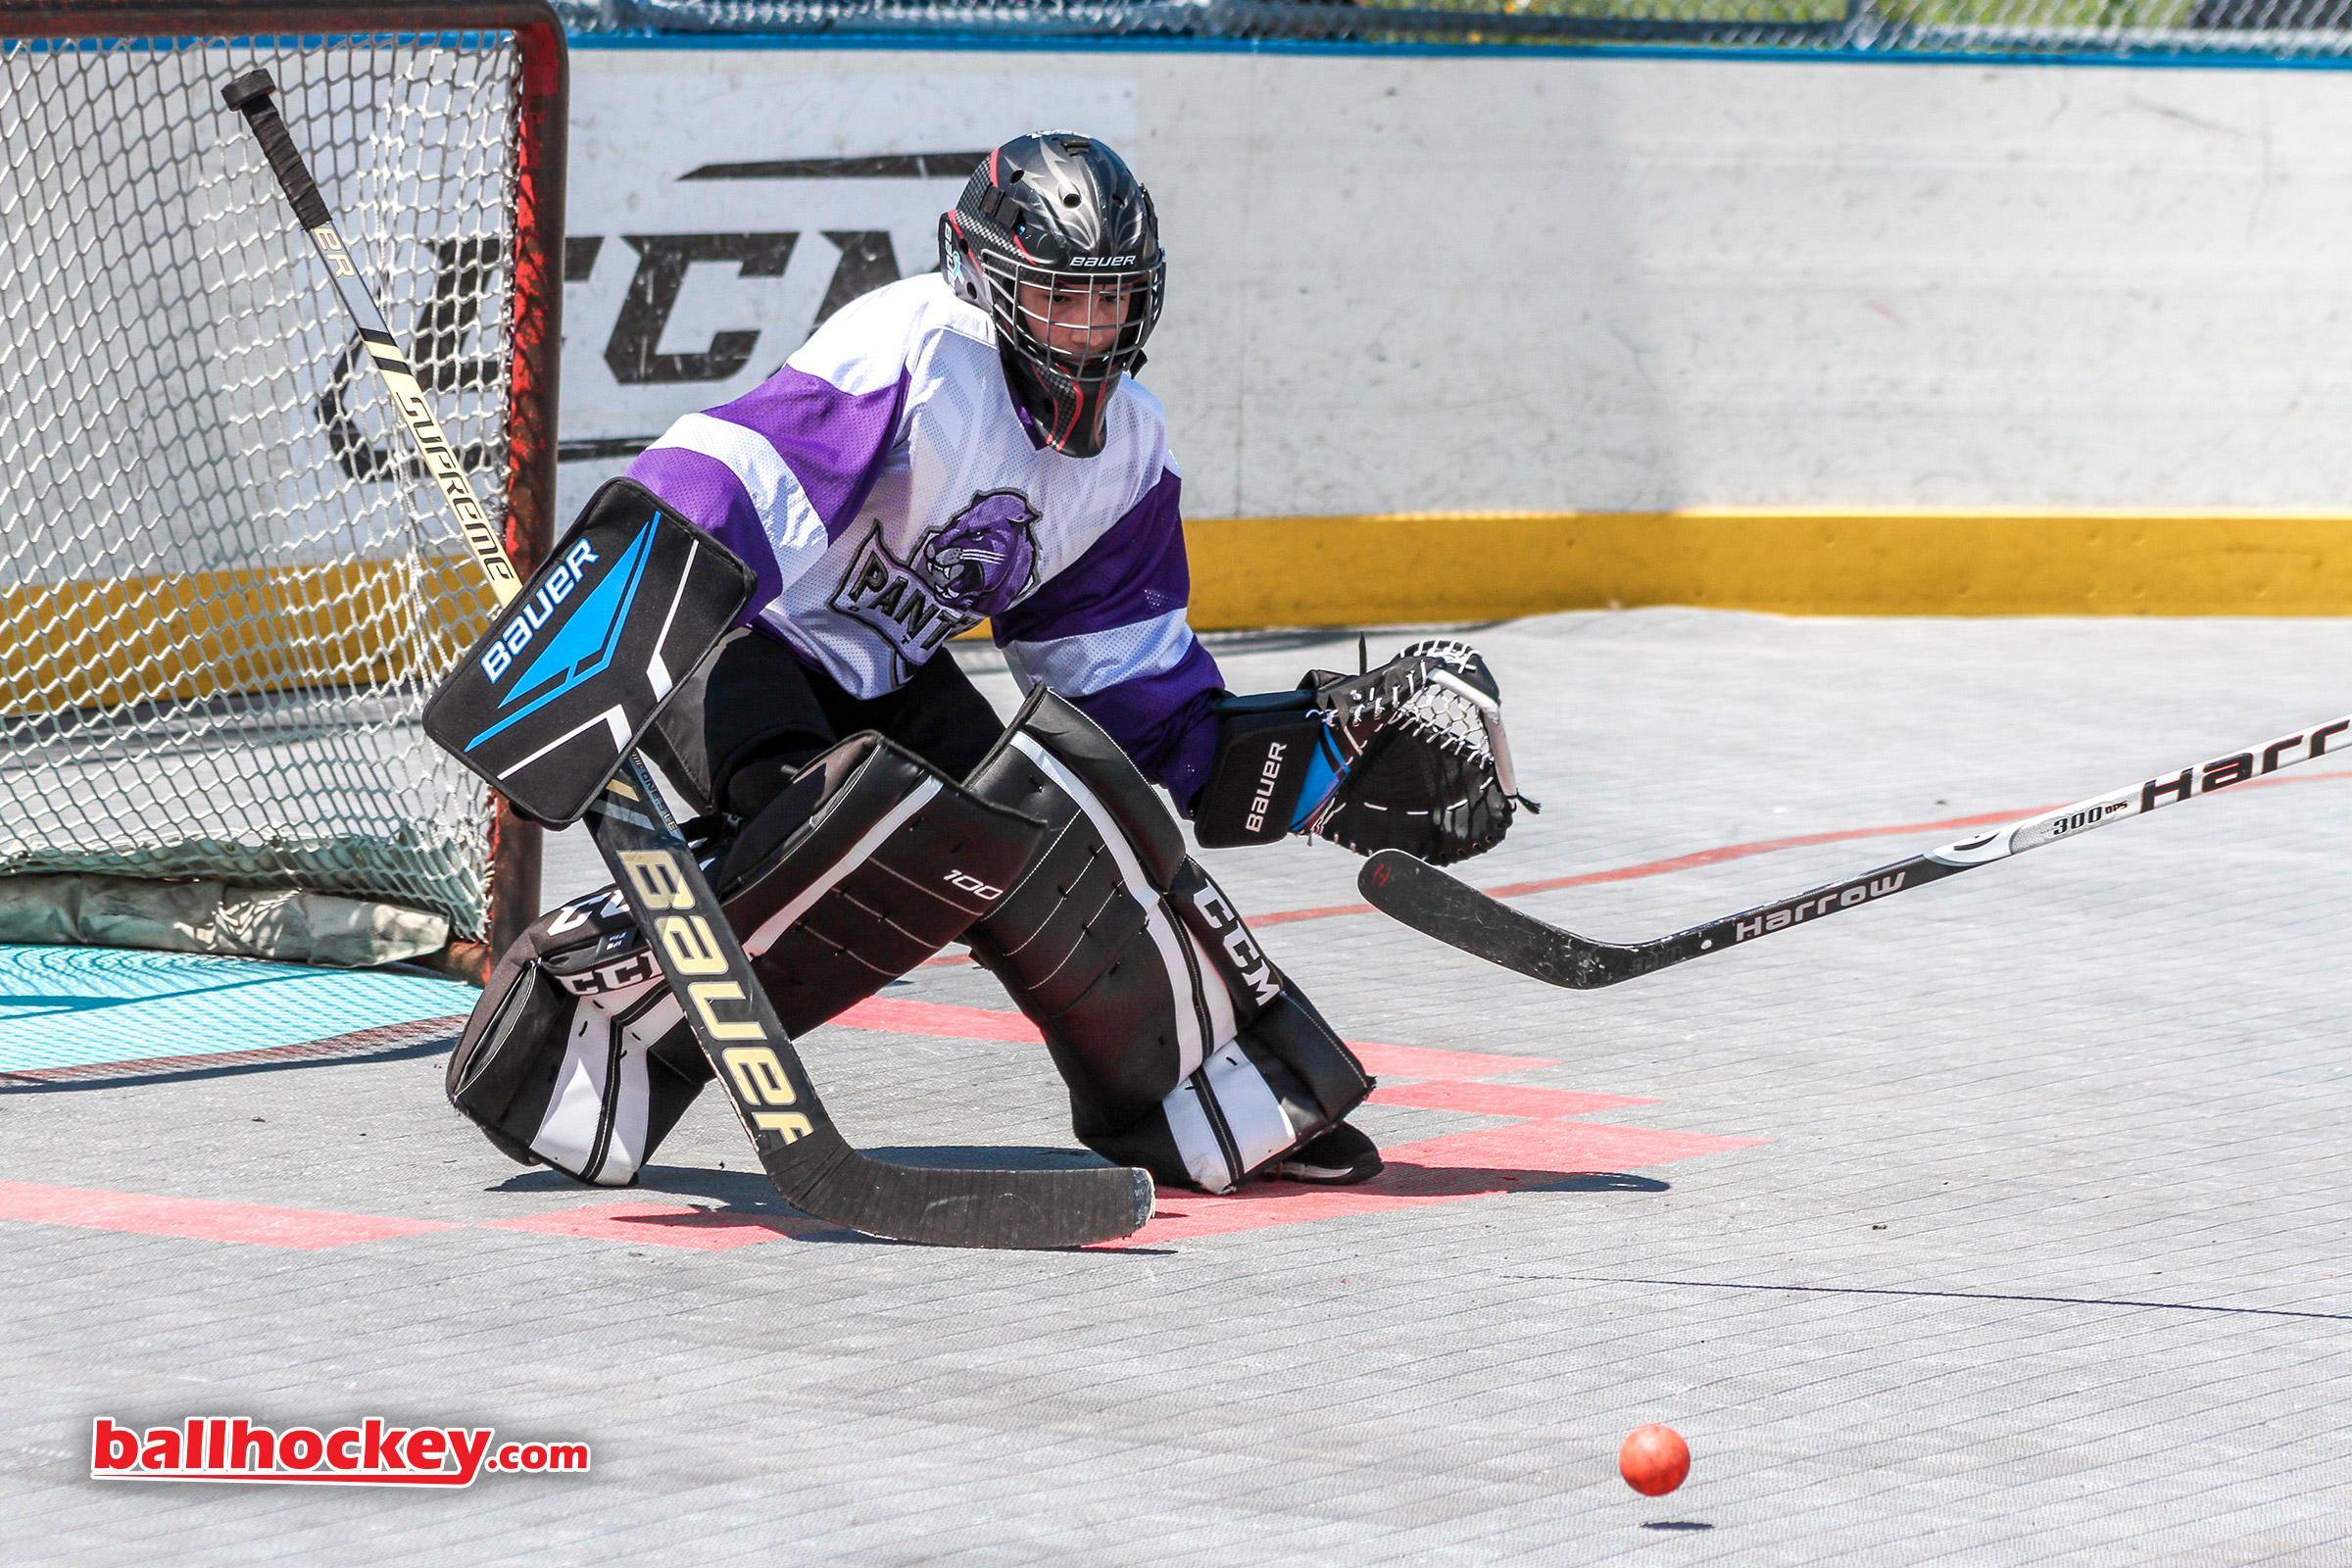 2017 Bauer Ontario Youth Championships (part 1) — ballhockey com